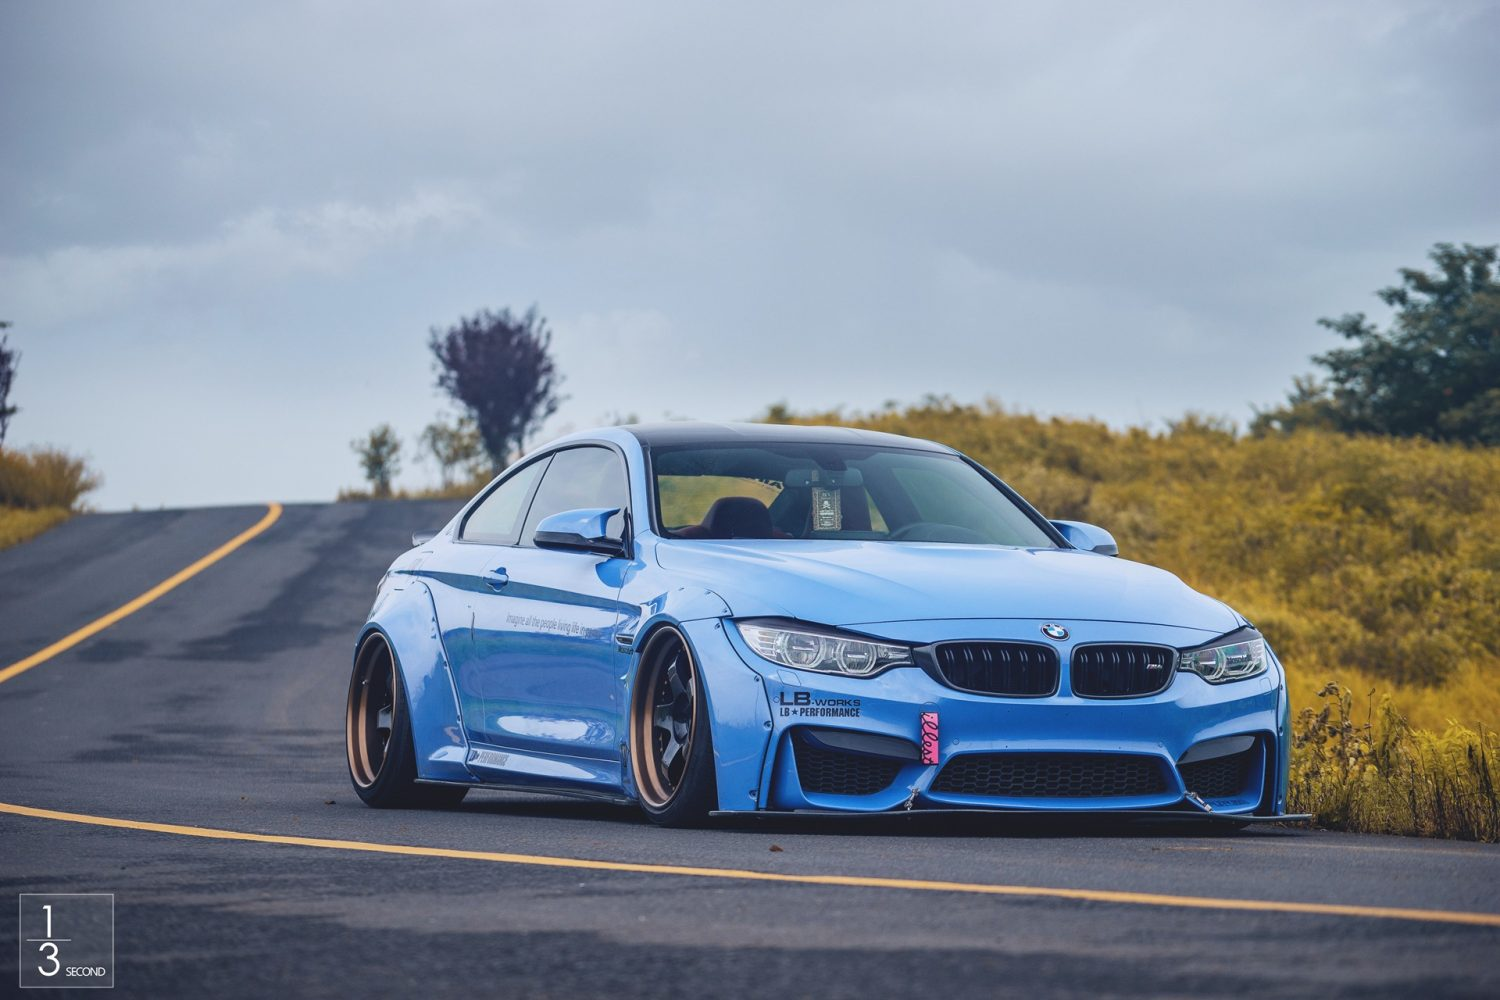 Sexy Lb Works M4 Stancenation Form Gt Function